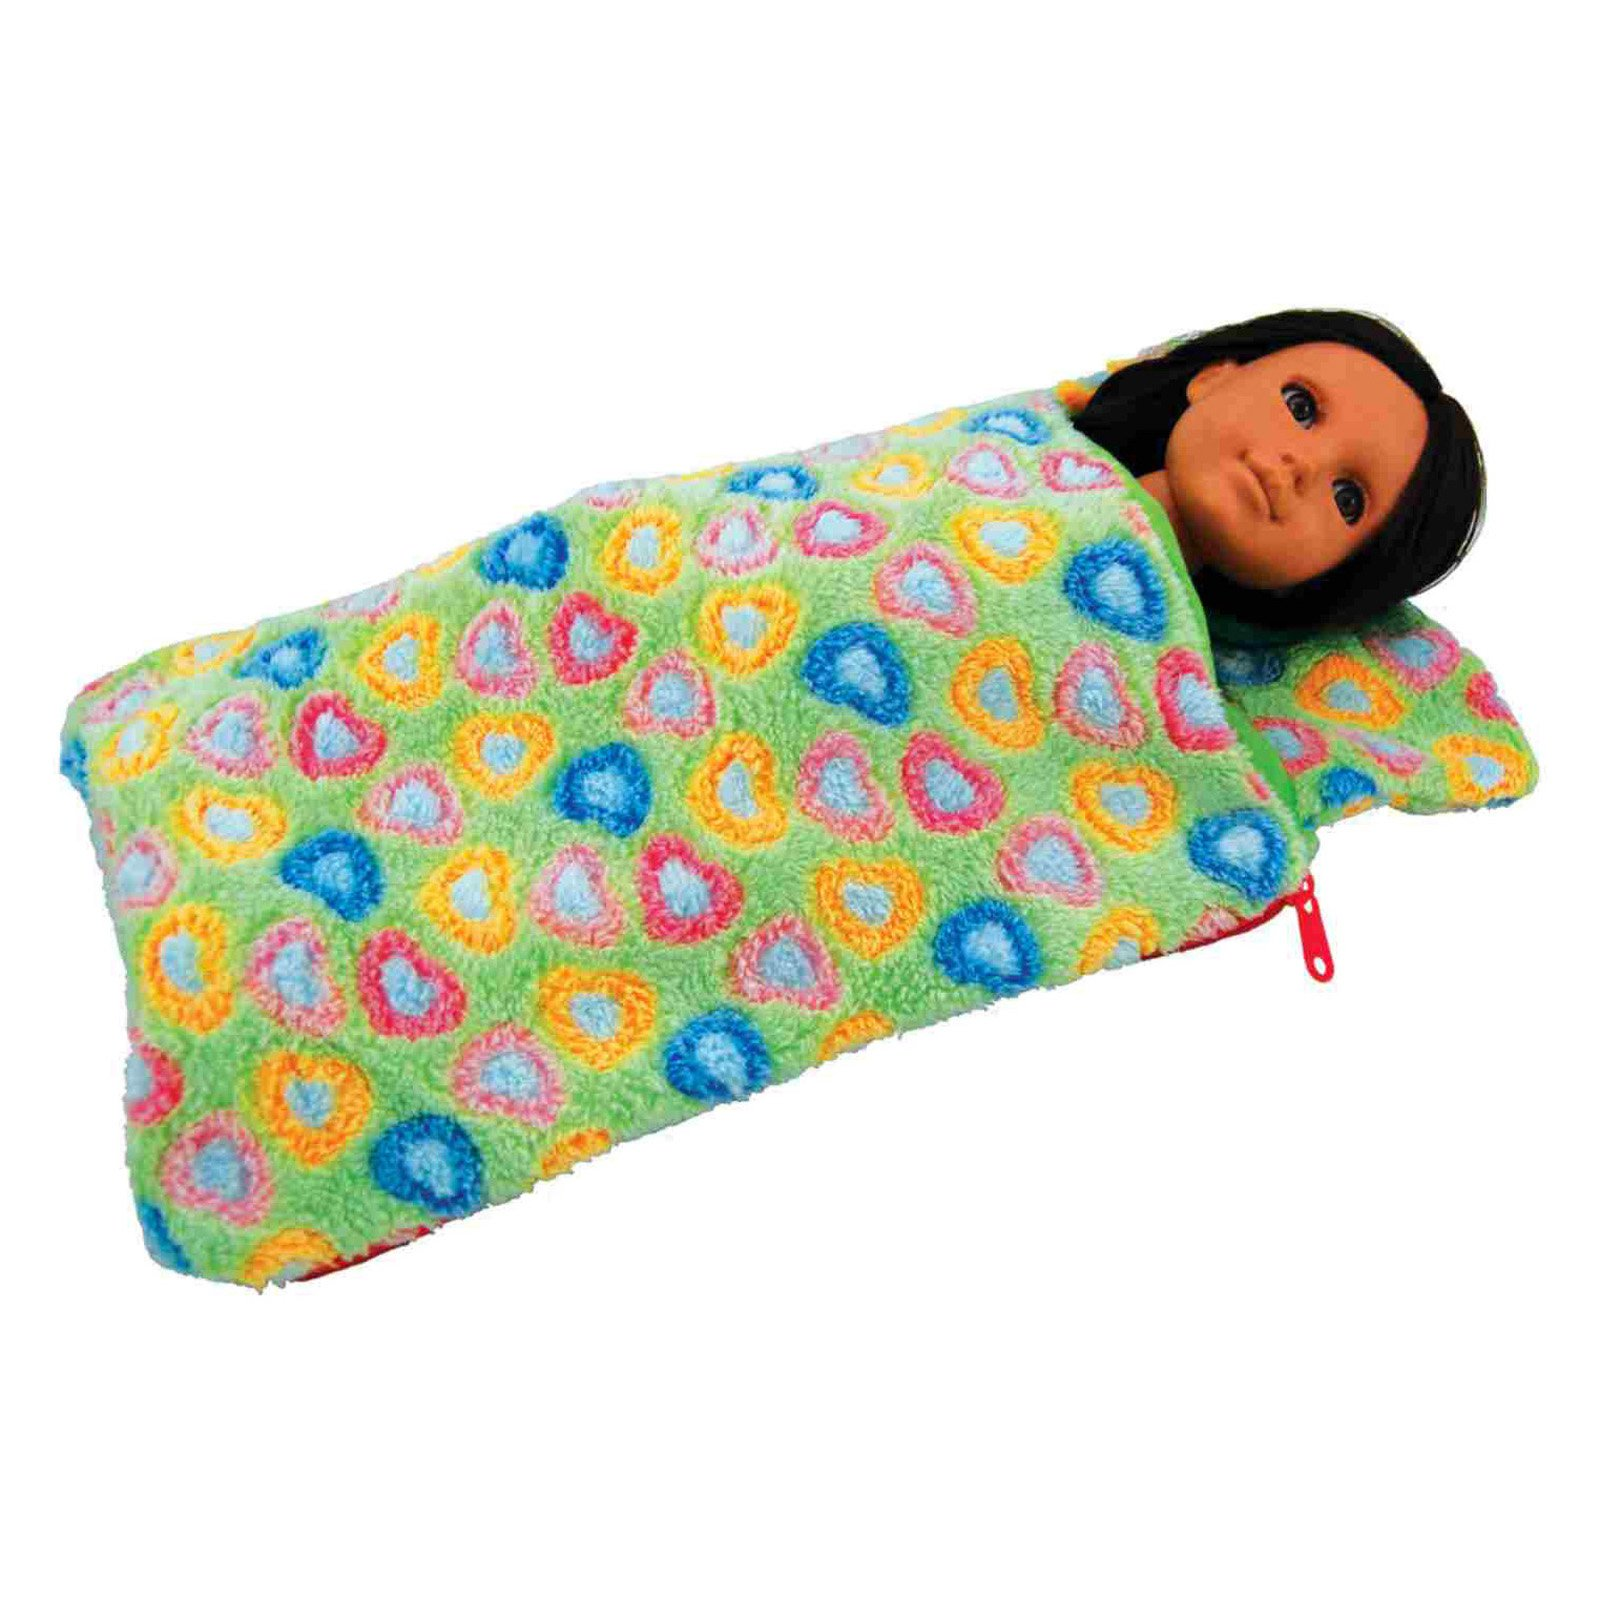 18 Inch Doll Bedding Accessory, Green Super Soft Sleepover Party Sleeping Bag